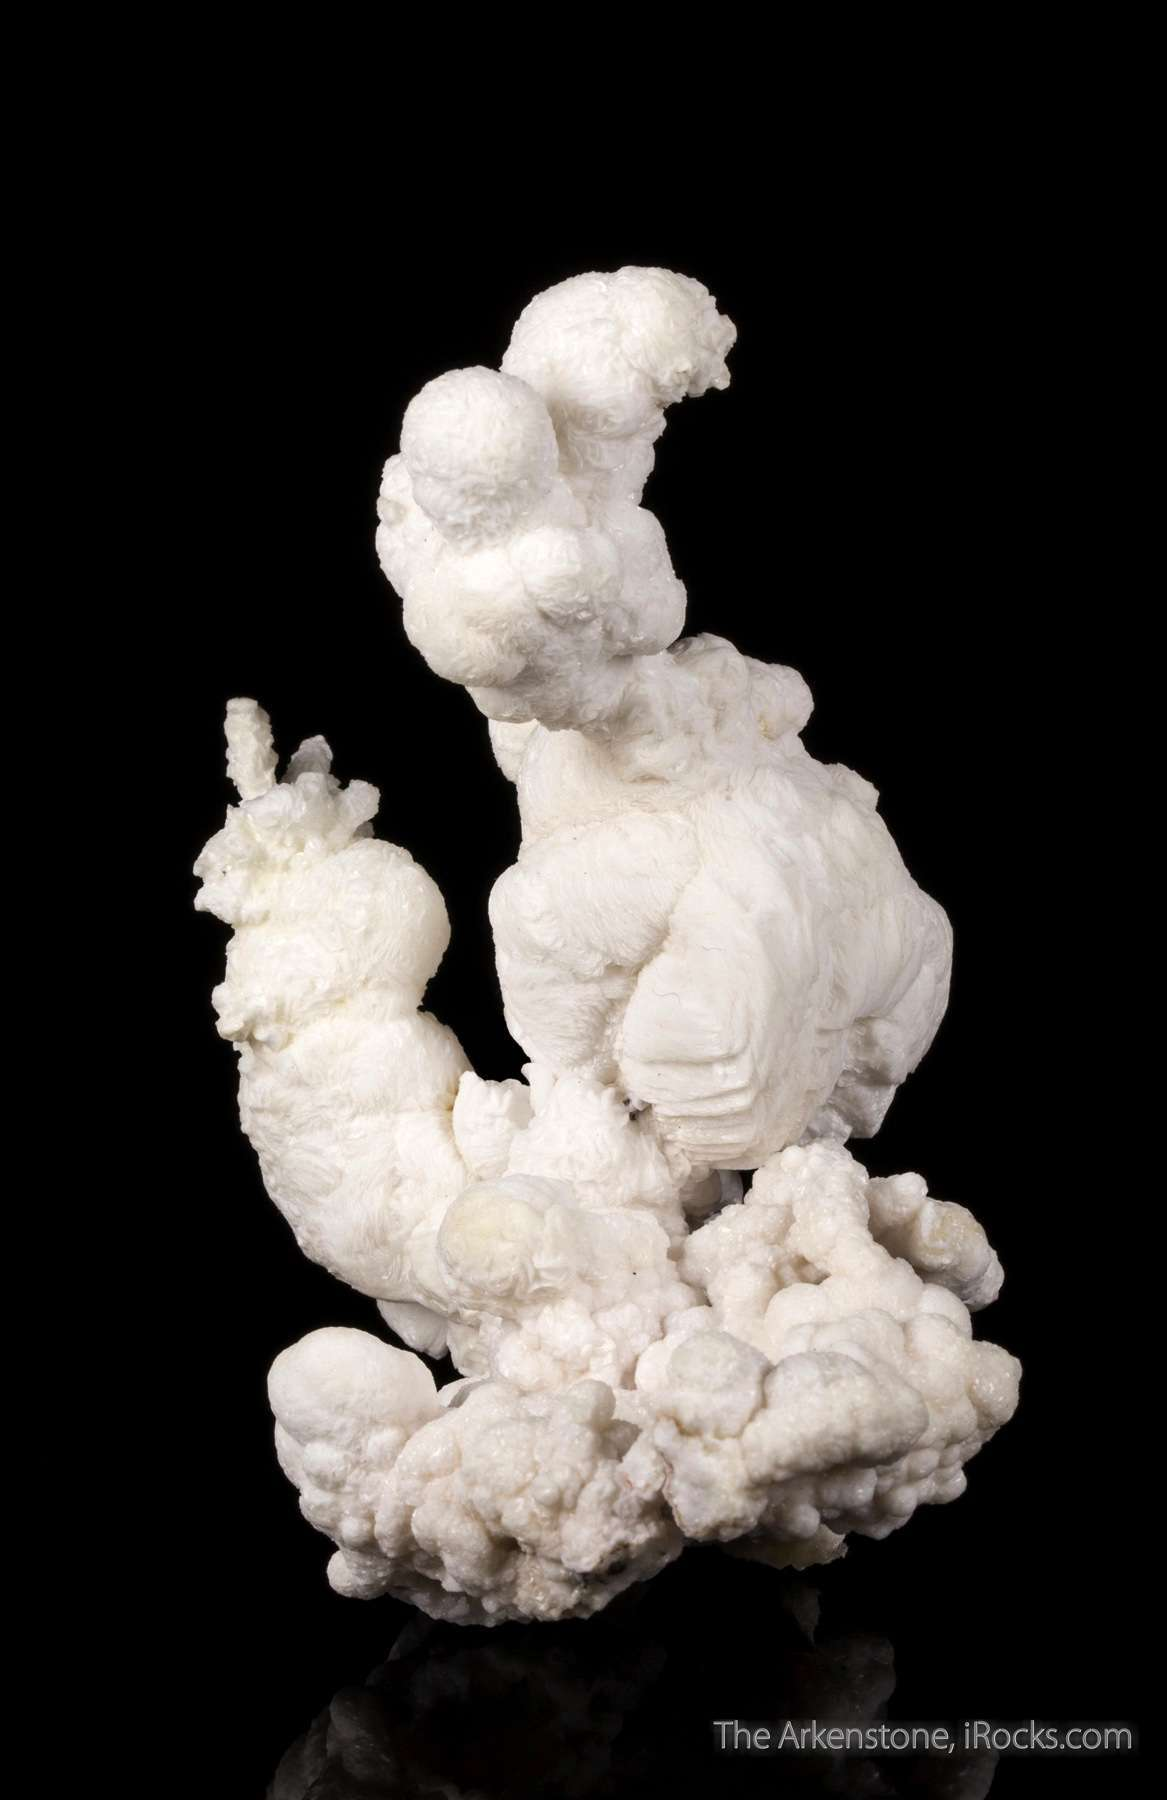 This freeform specimen botryoidal white barite closely resembles flos